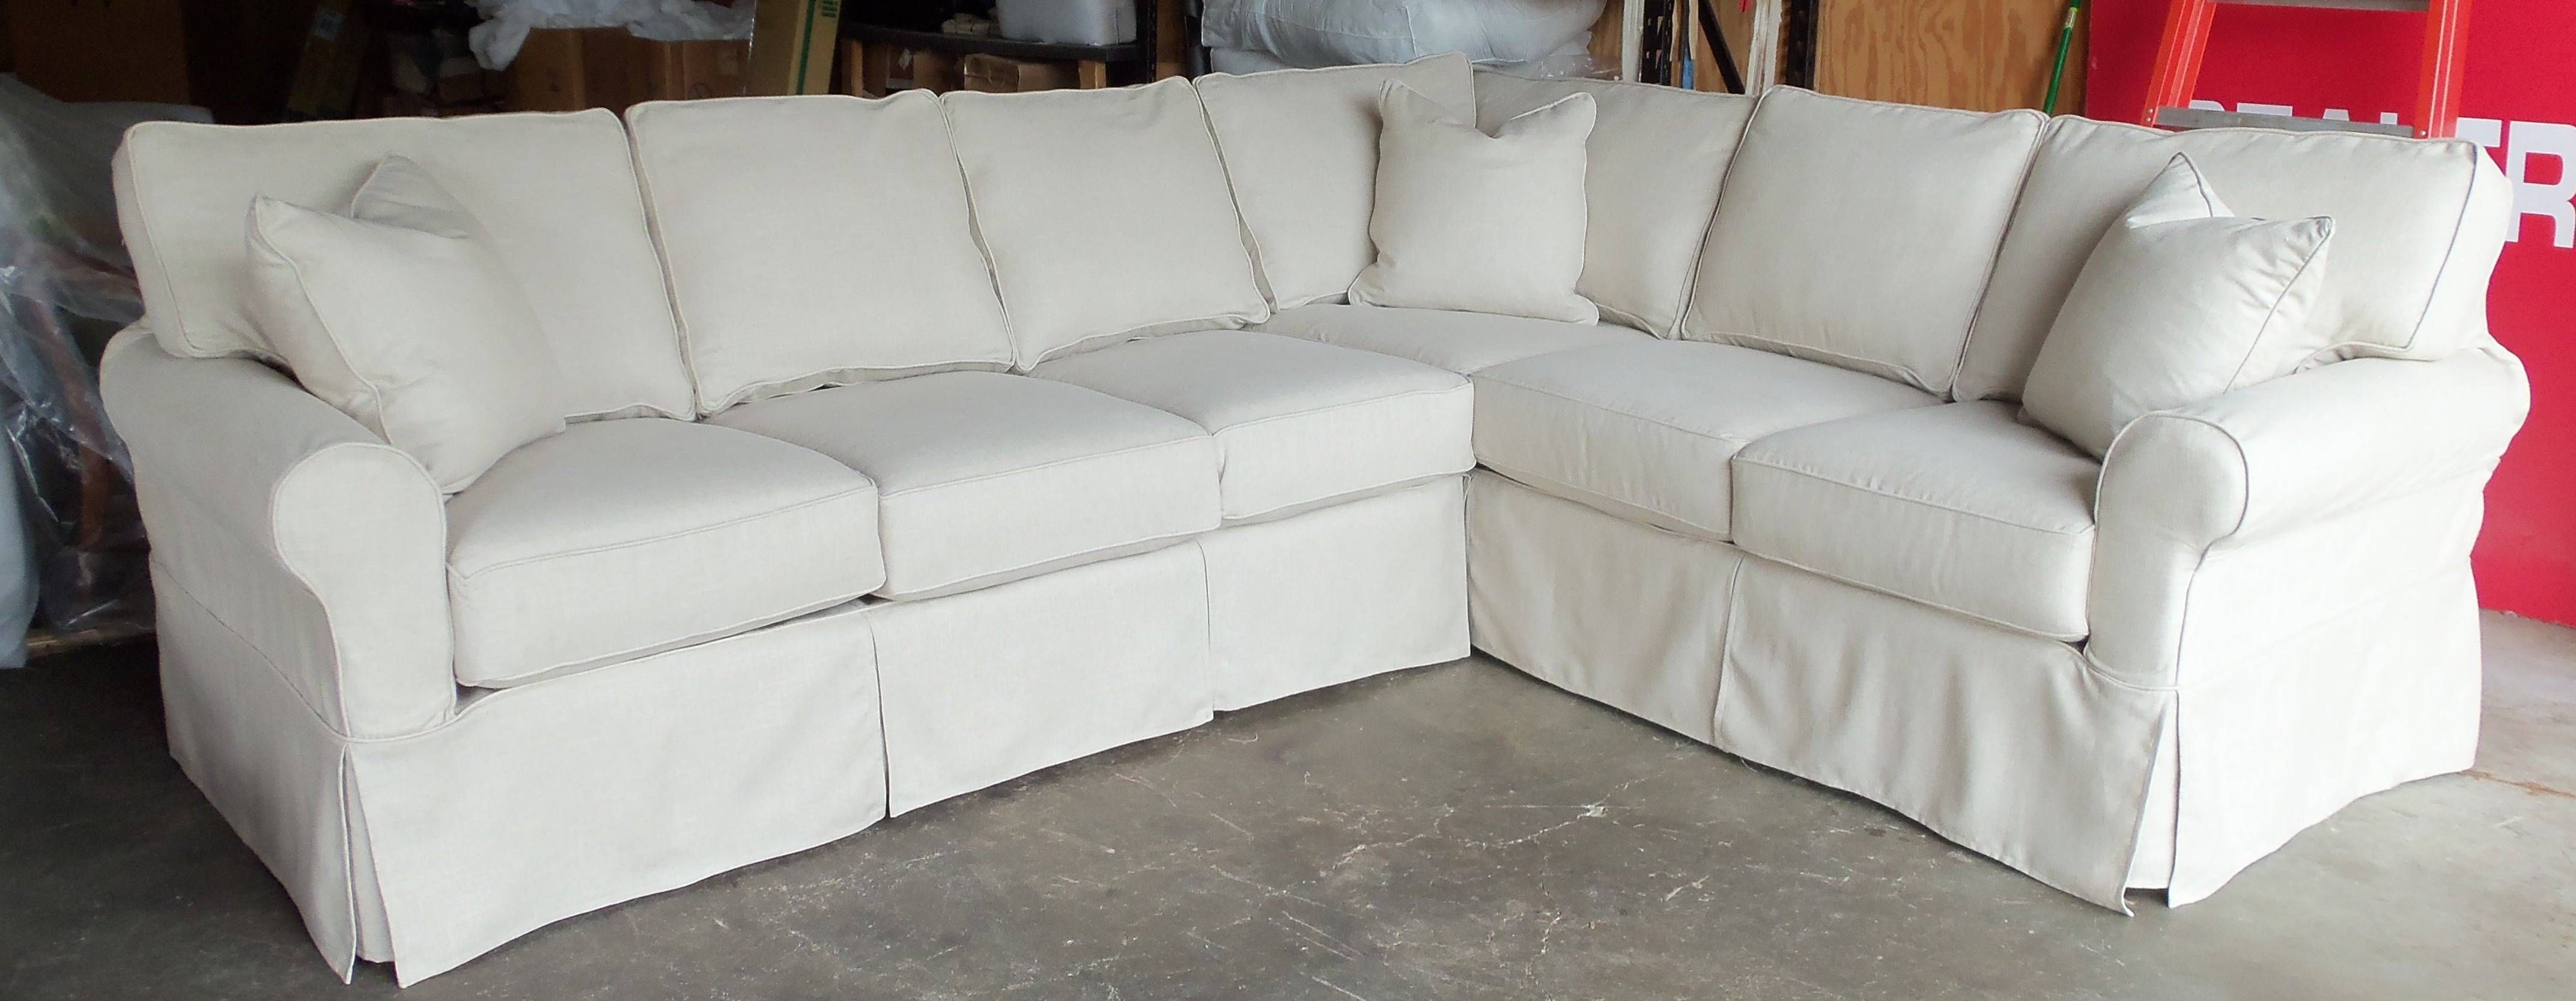 Inspirations: Interesting Furniture Sectional Sofa Slipcovers For pertaining to Slipcovers Sofas (Image 15 of 30)